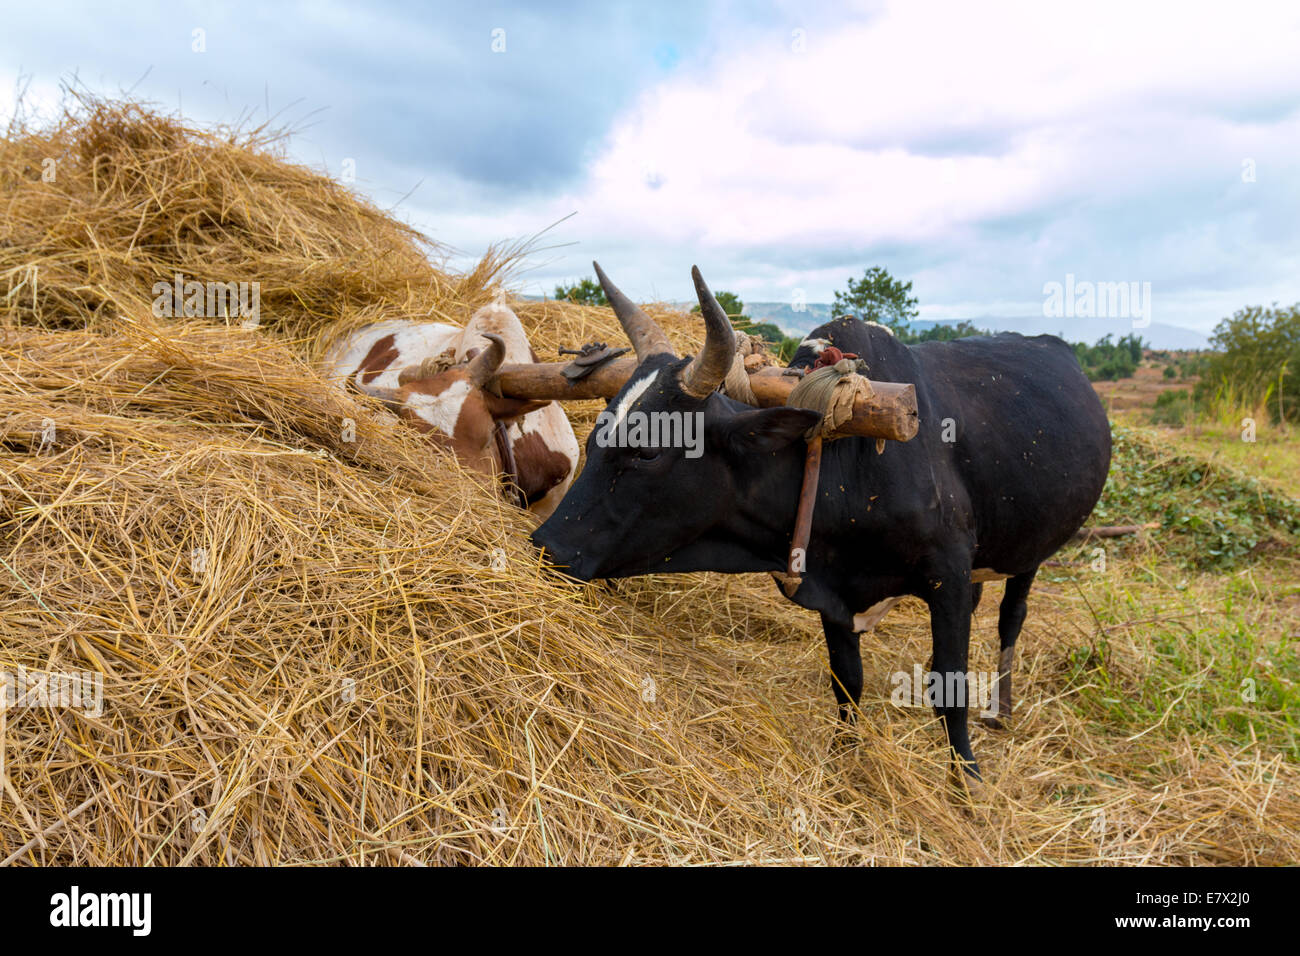 A pair of oxen fitted with a yoke eating from a haystack - Stock Image